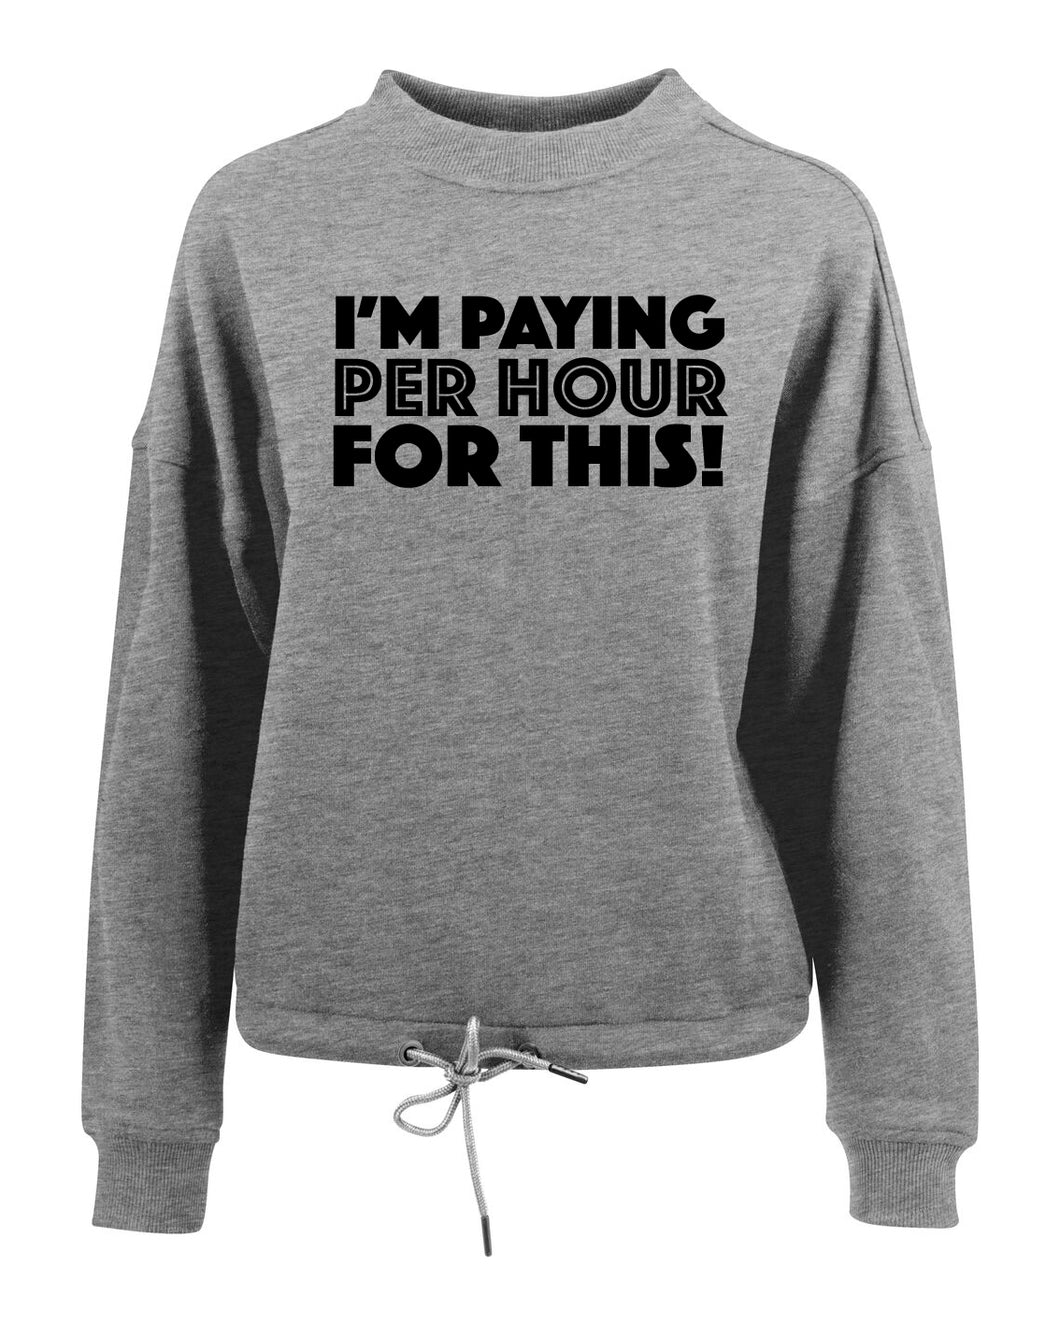 I'M PAYING PER HOUR FOR THIS! - Women's oversize crew neck sweatshirt - SoreTodayStrongTomorrow